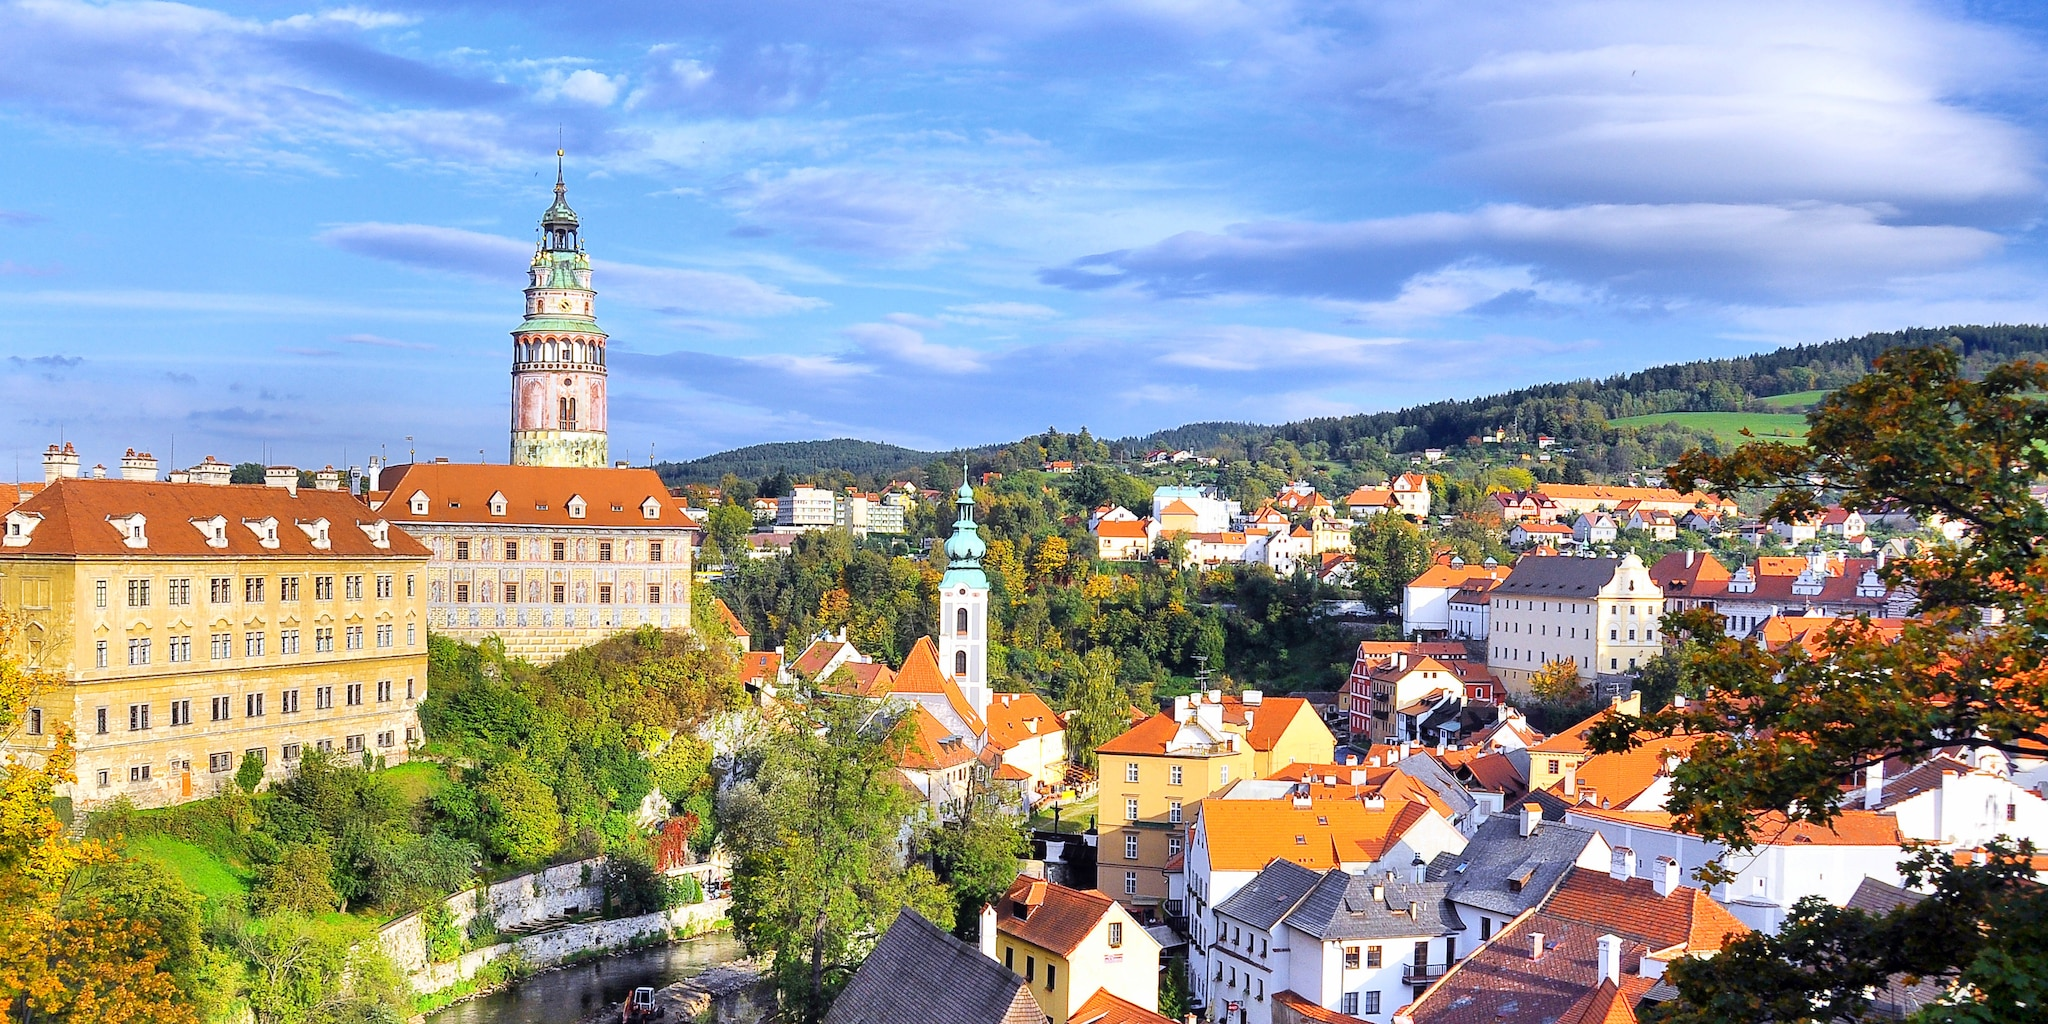 A cathedral looms over a church and other buildings in a picturesque European town